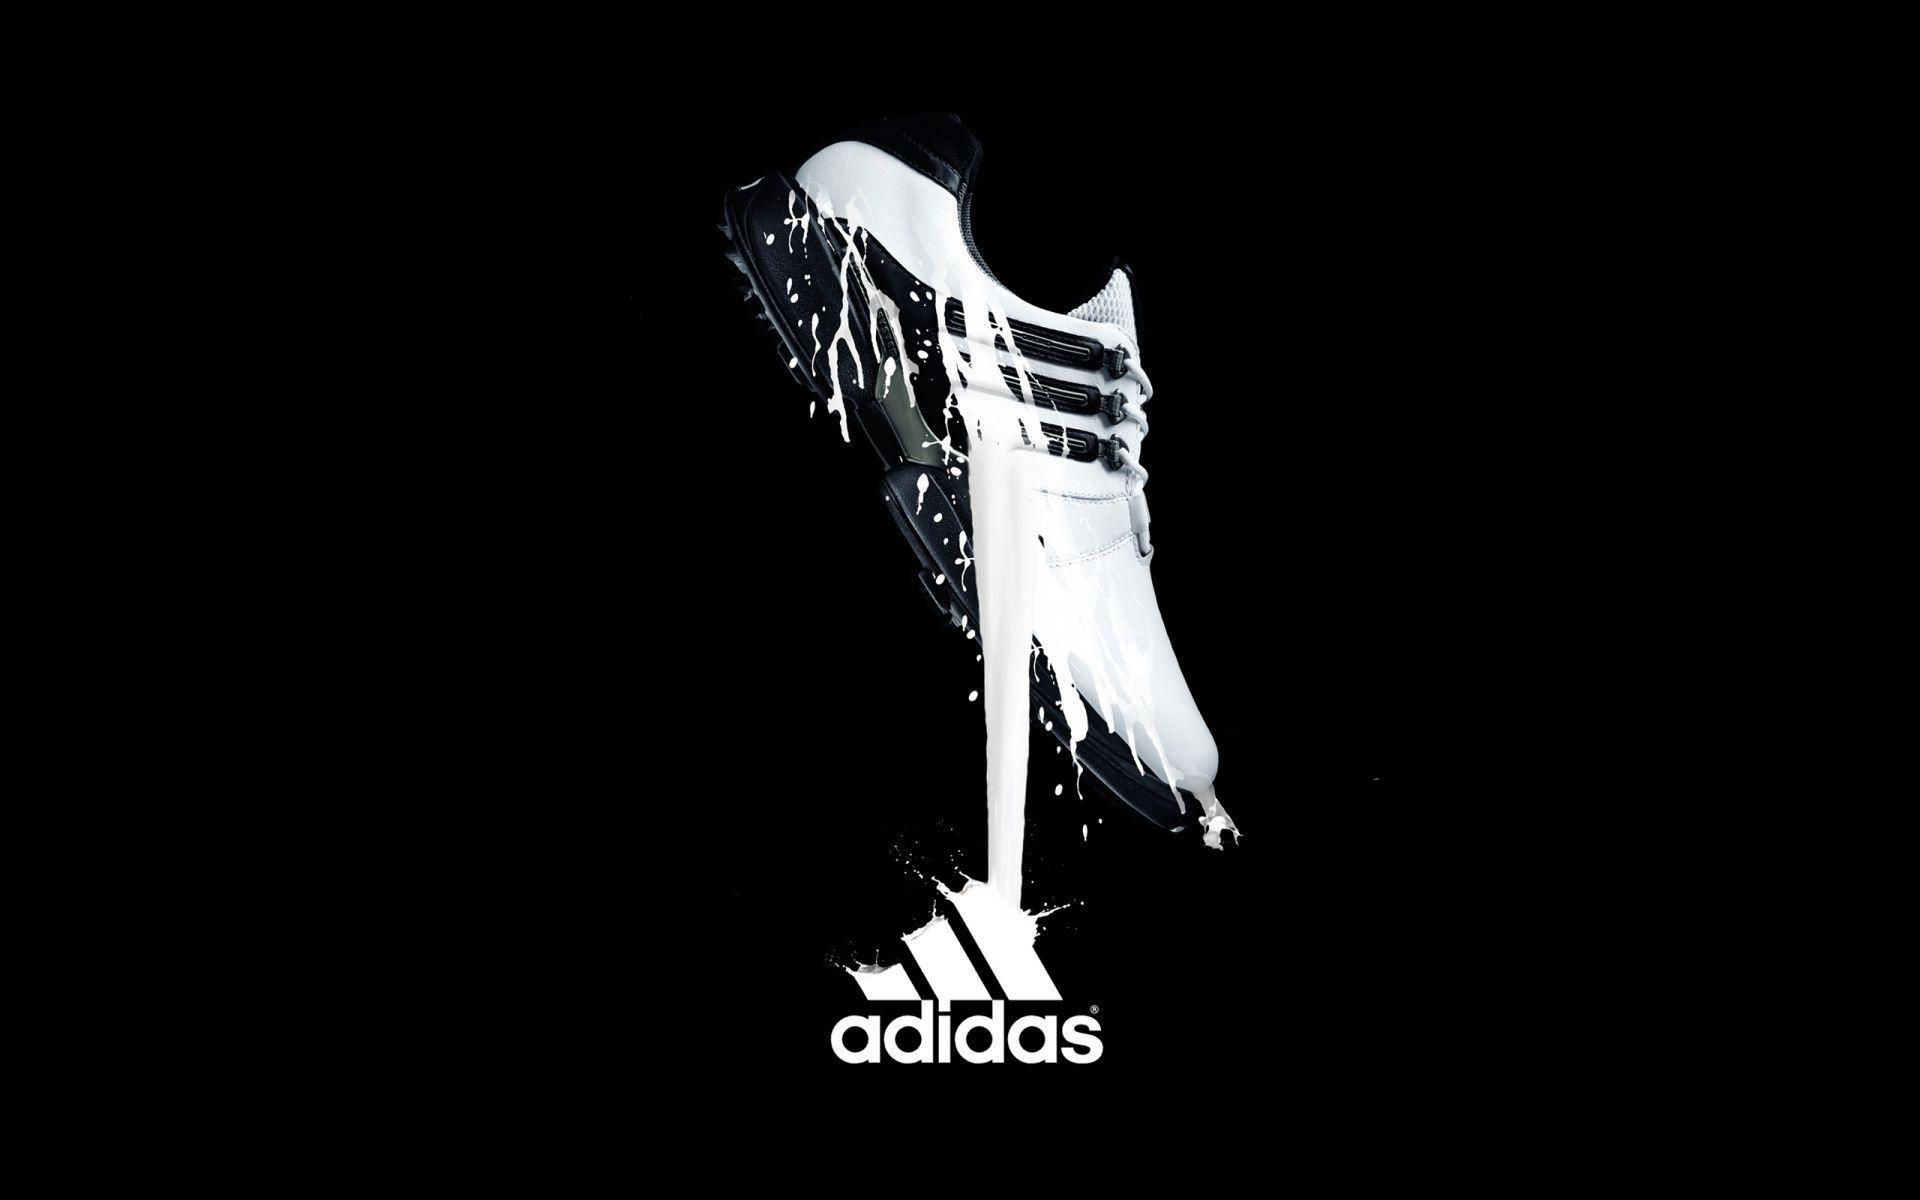 Adidas 2015 Wallpapers 1920x1200